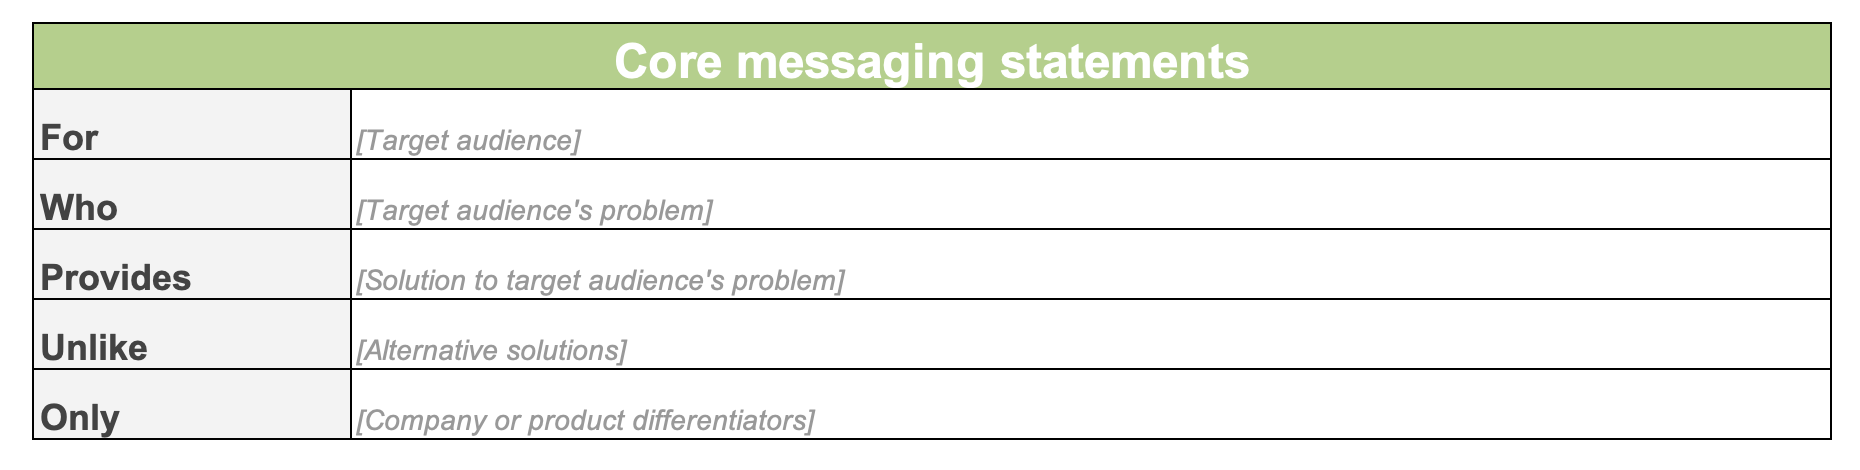 Core messaging statements